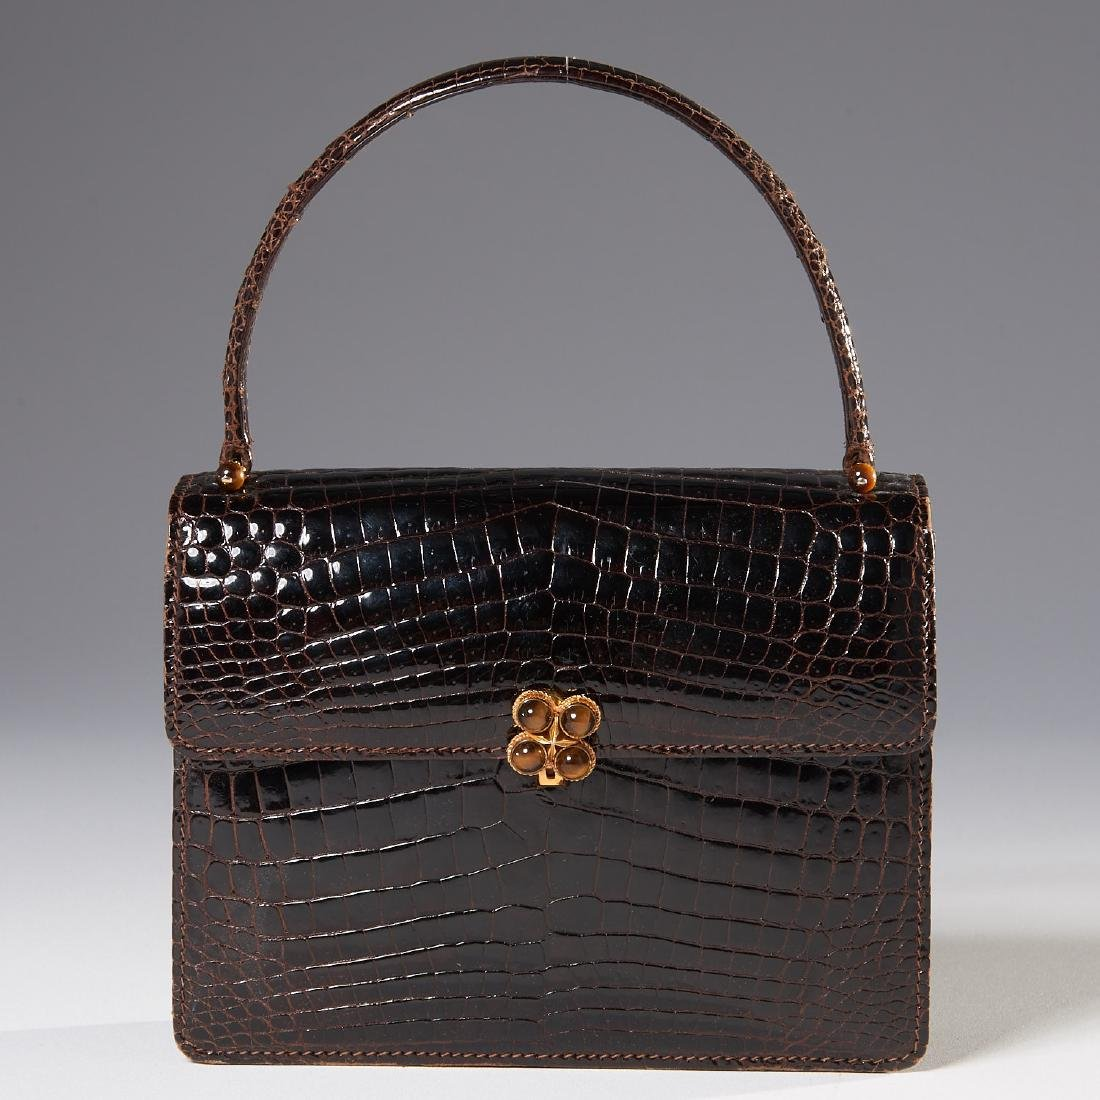 Gucci brown alligator handbag